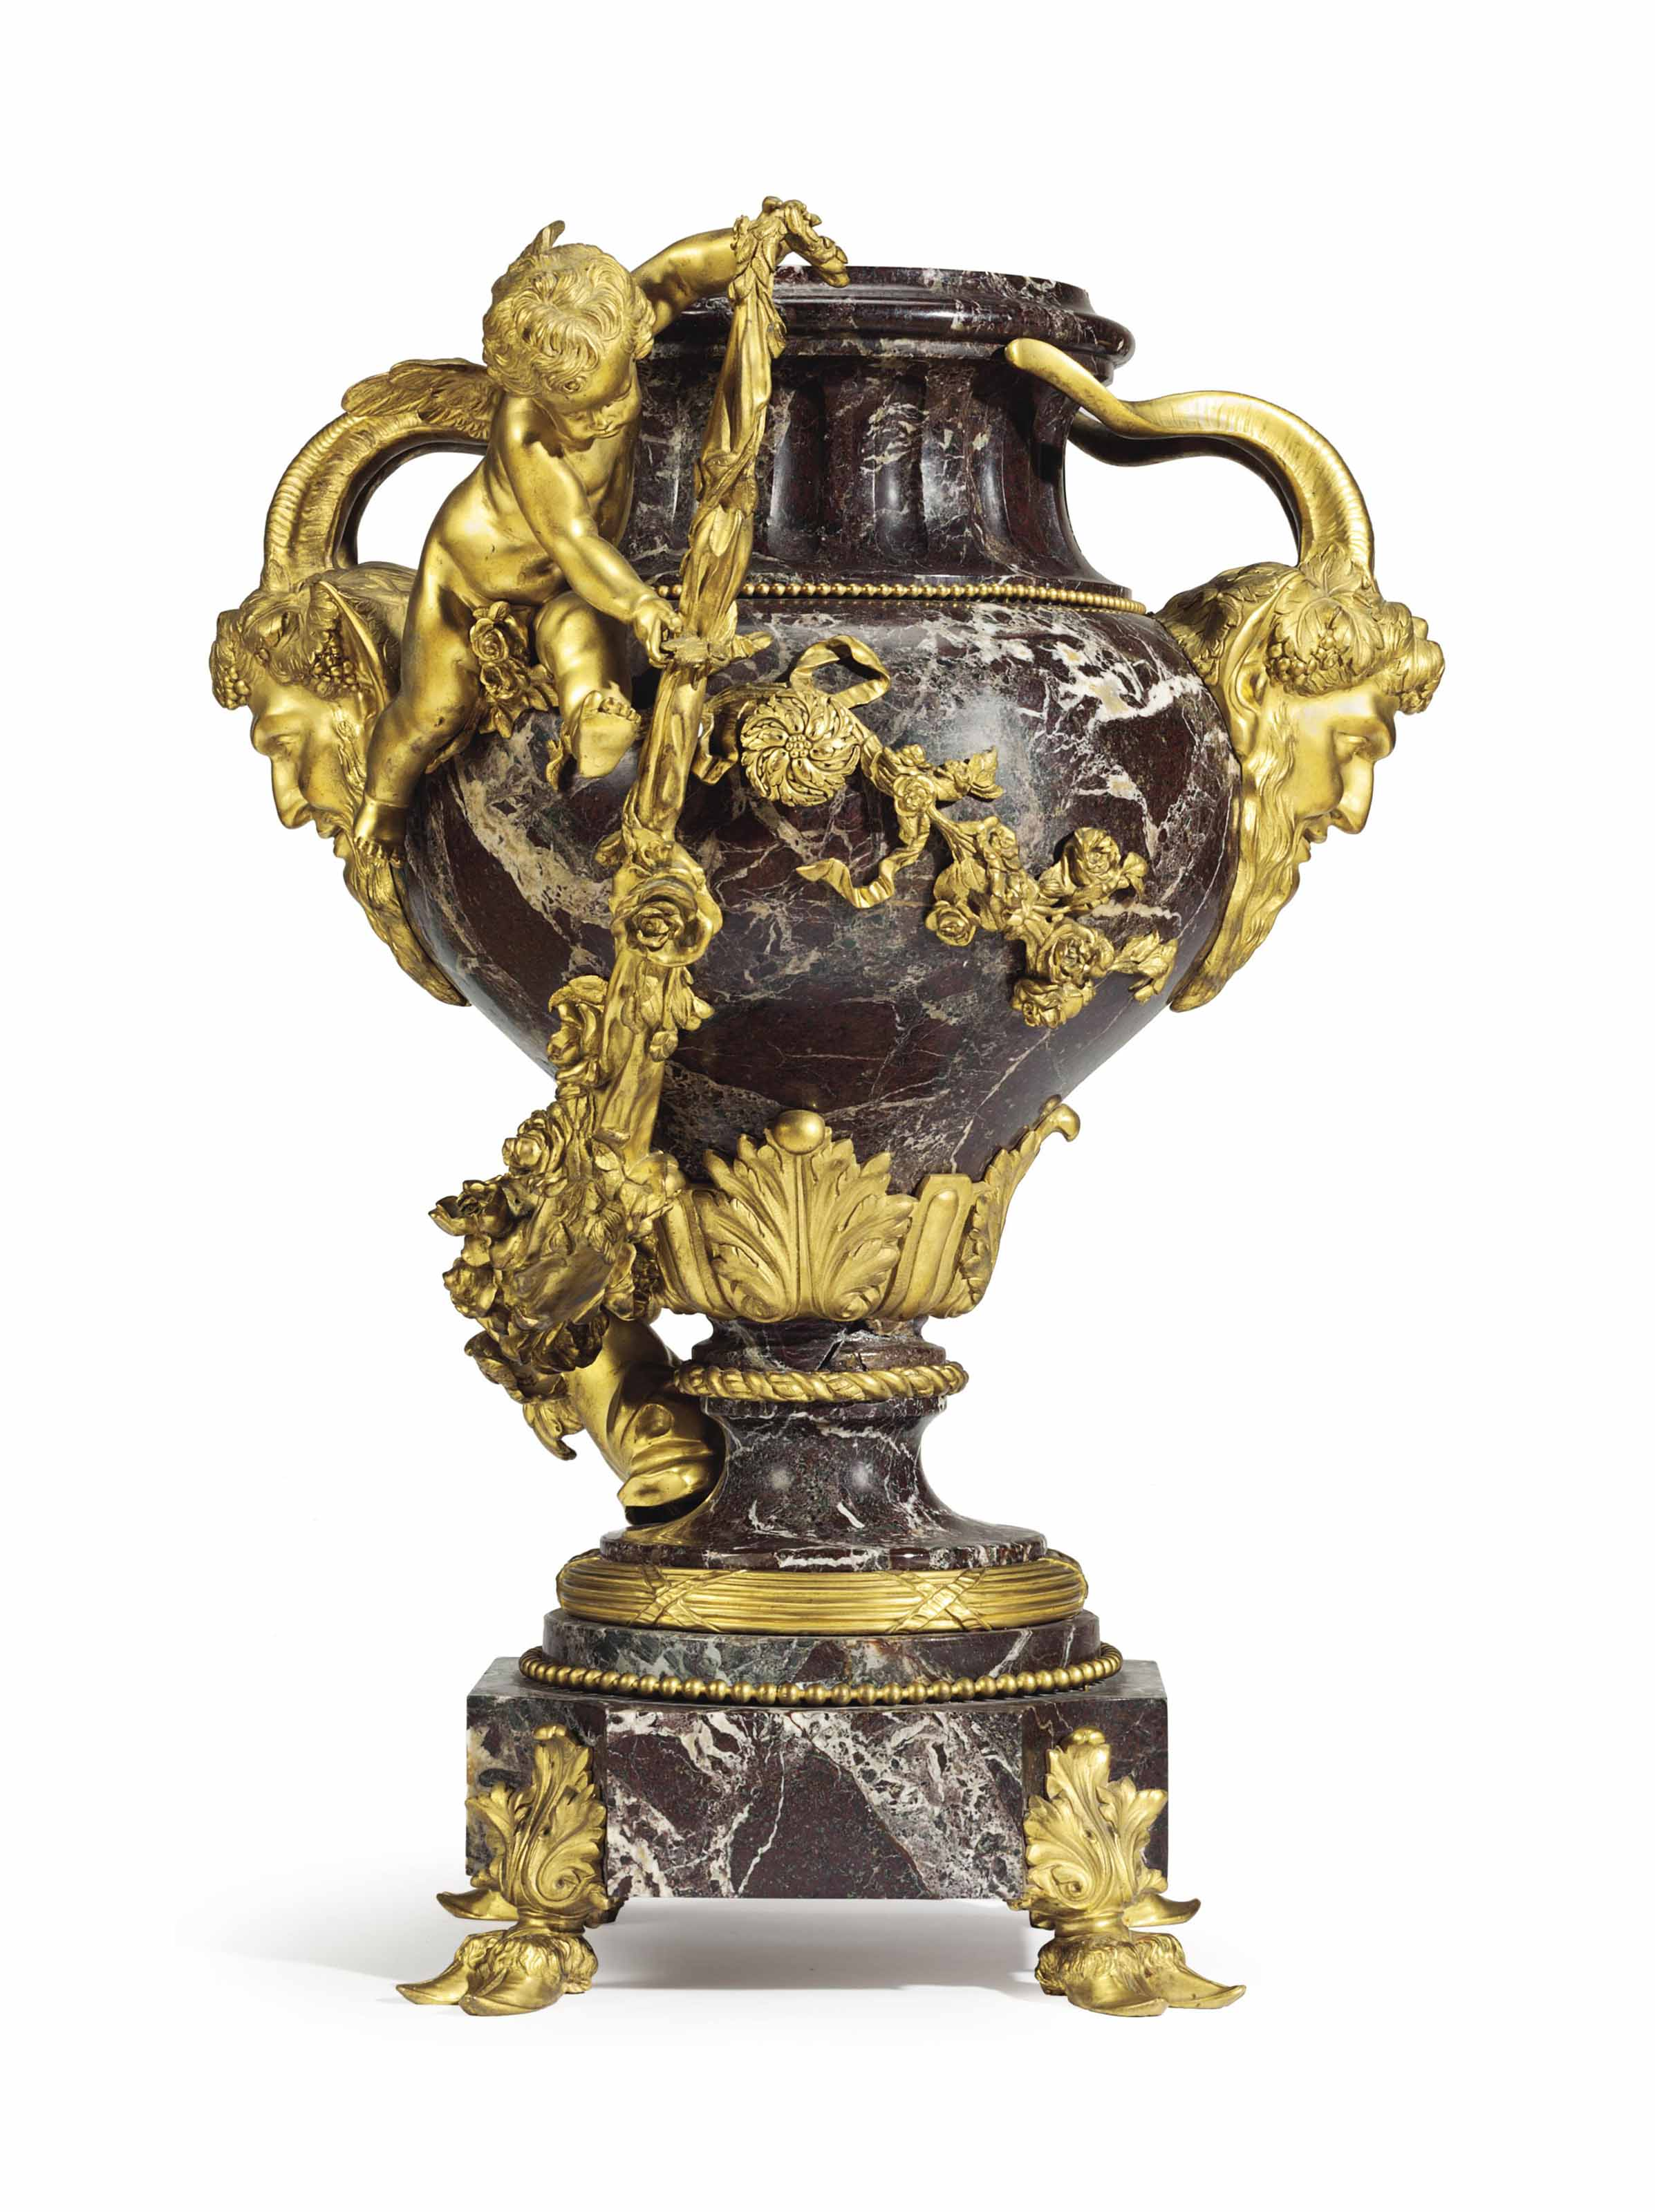 A FRENCH ORMOLU-MOUNTED ROUGE MARBLE VASE